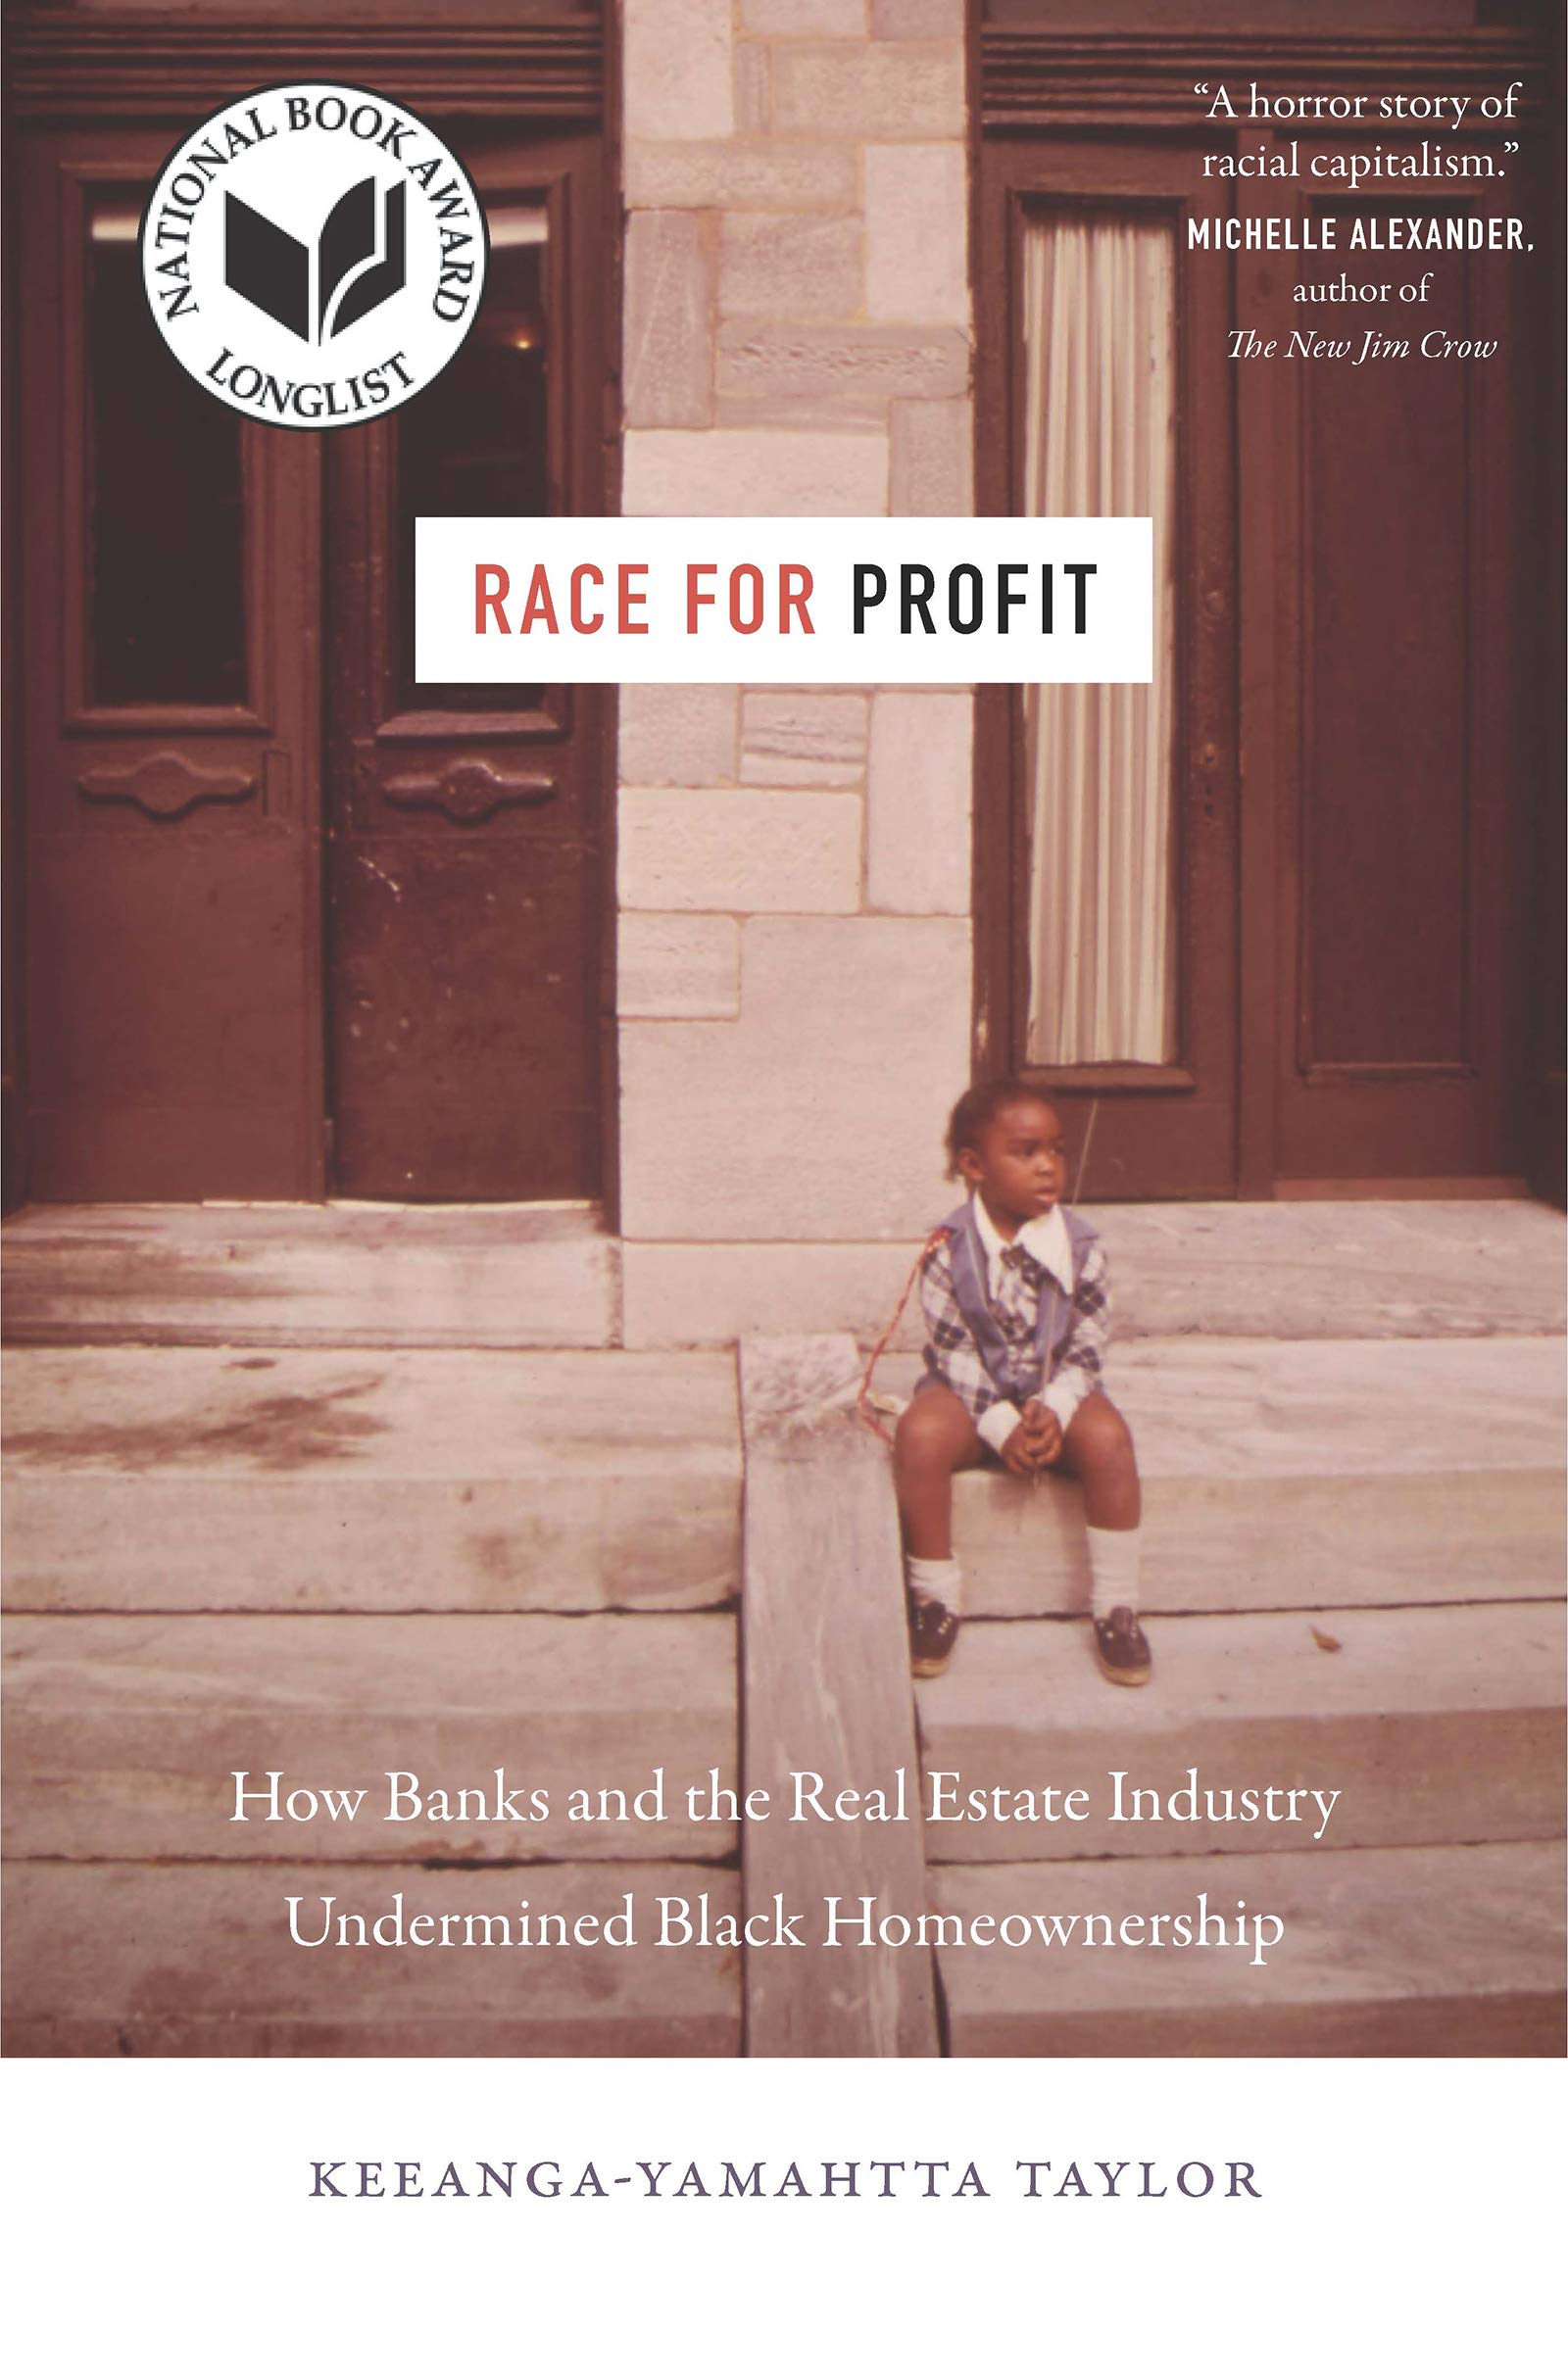 Race for Profit: How Banks and the Real Estate Industry Undermined Black Homeownership (Justice, Power, and Politics) by The University of North Carolina Press